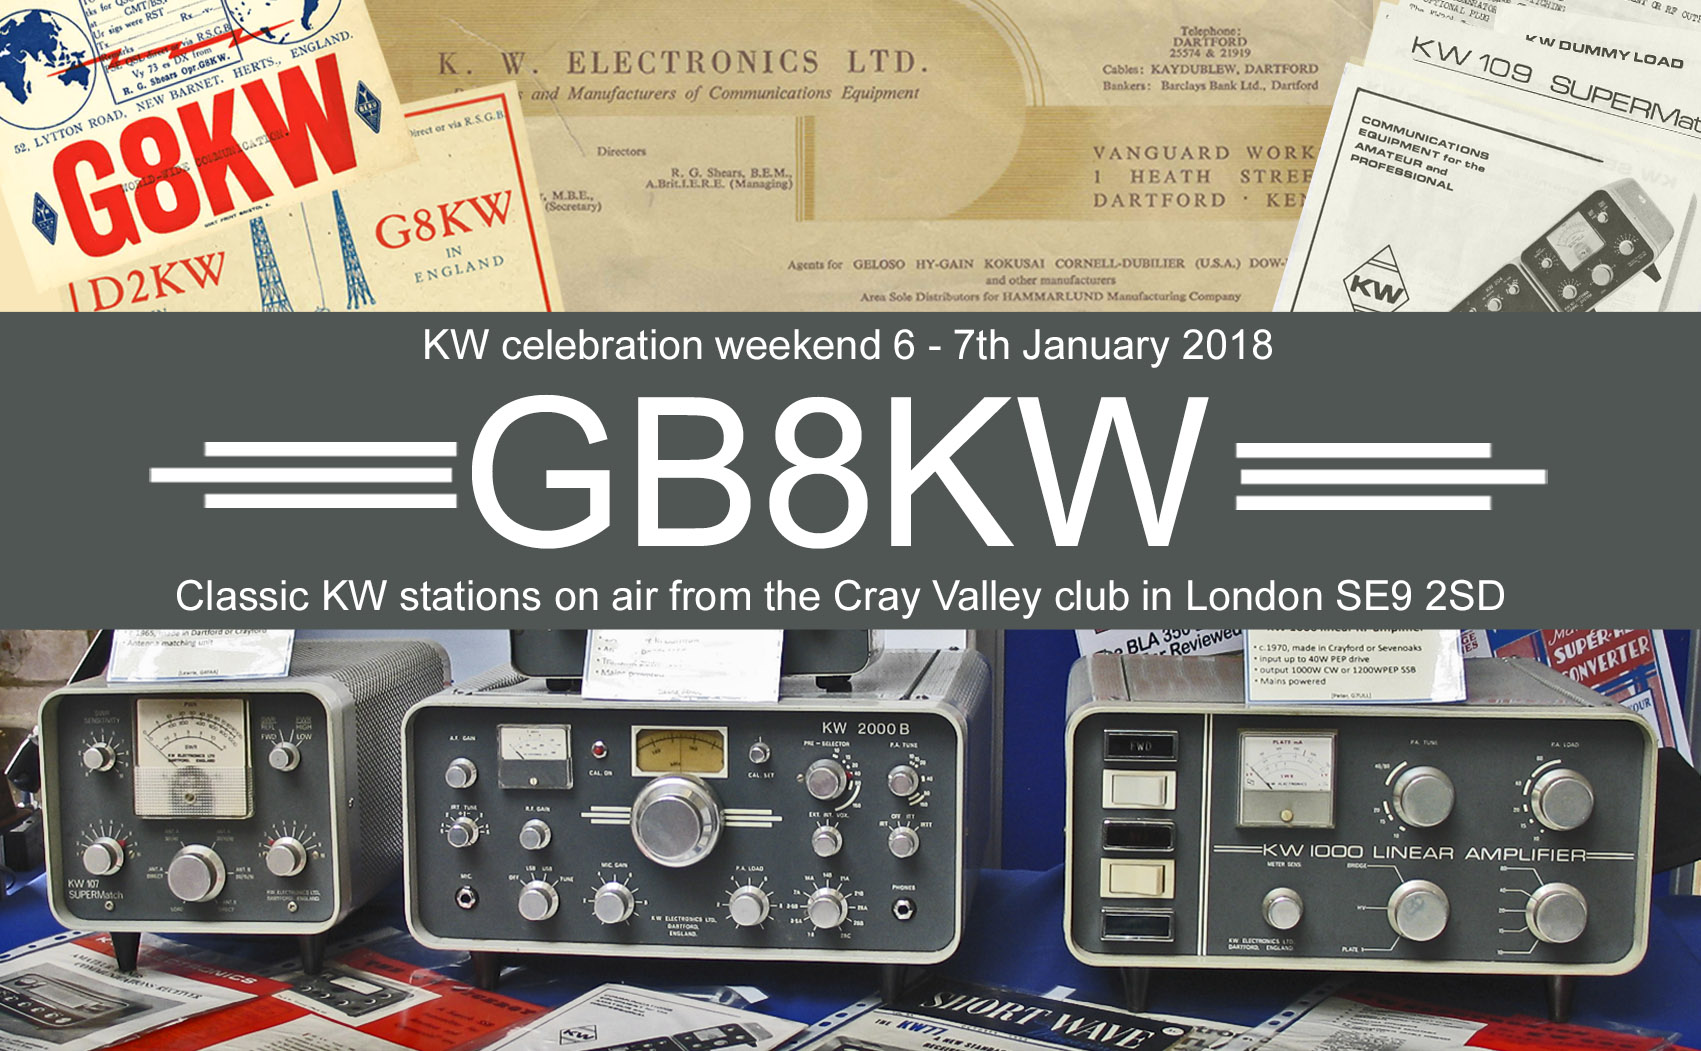 GB8KW QSL Card